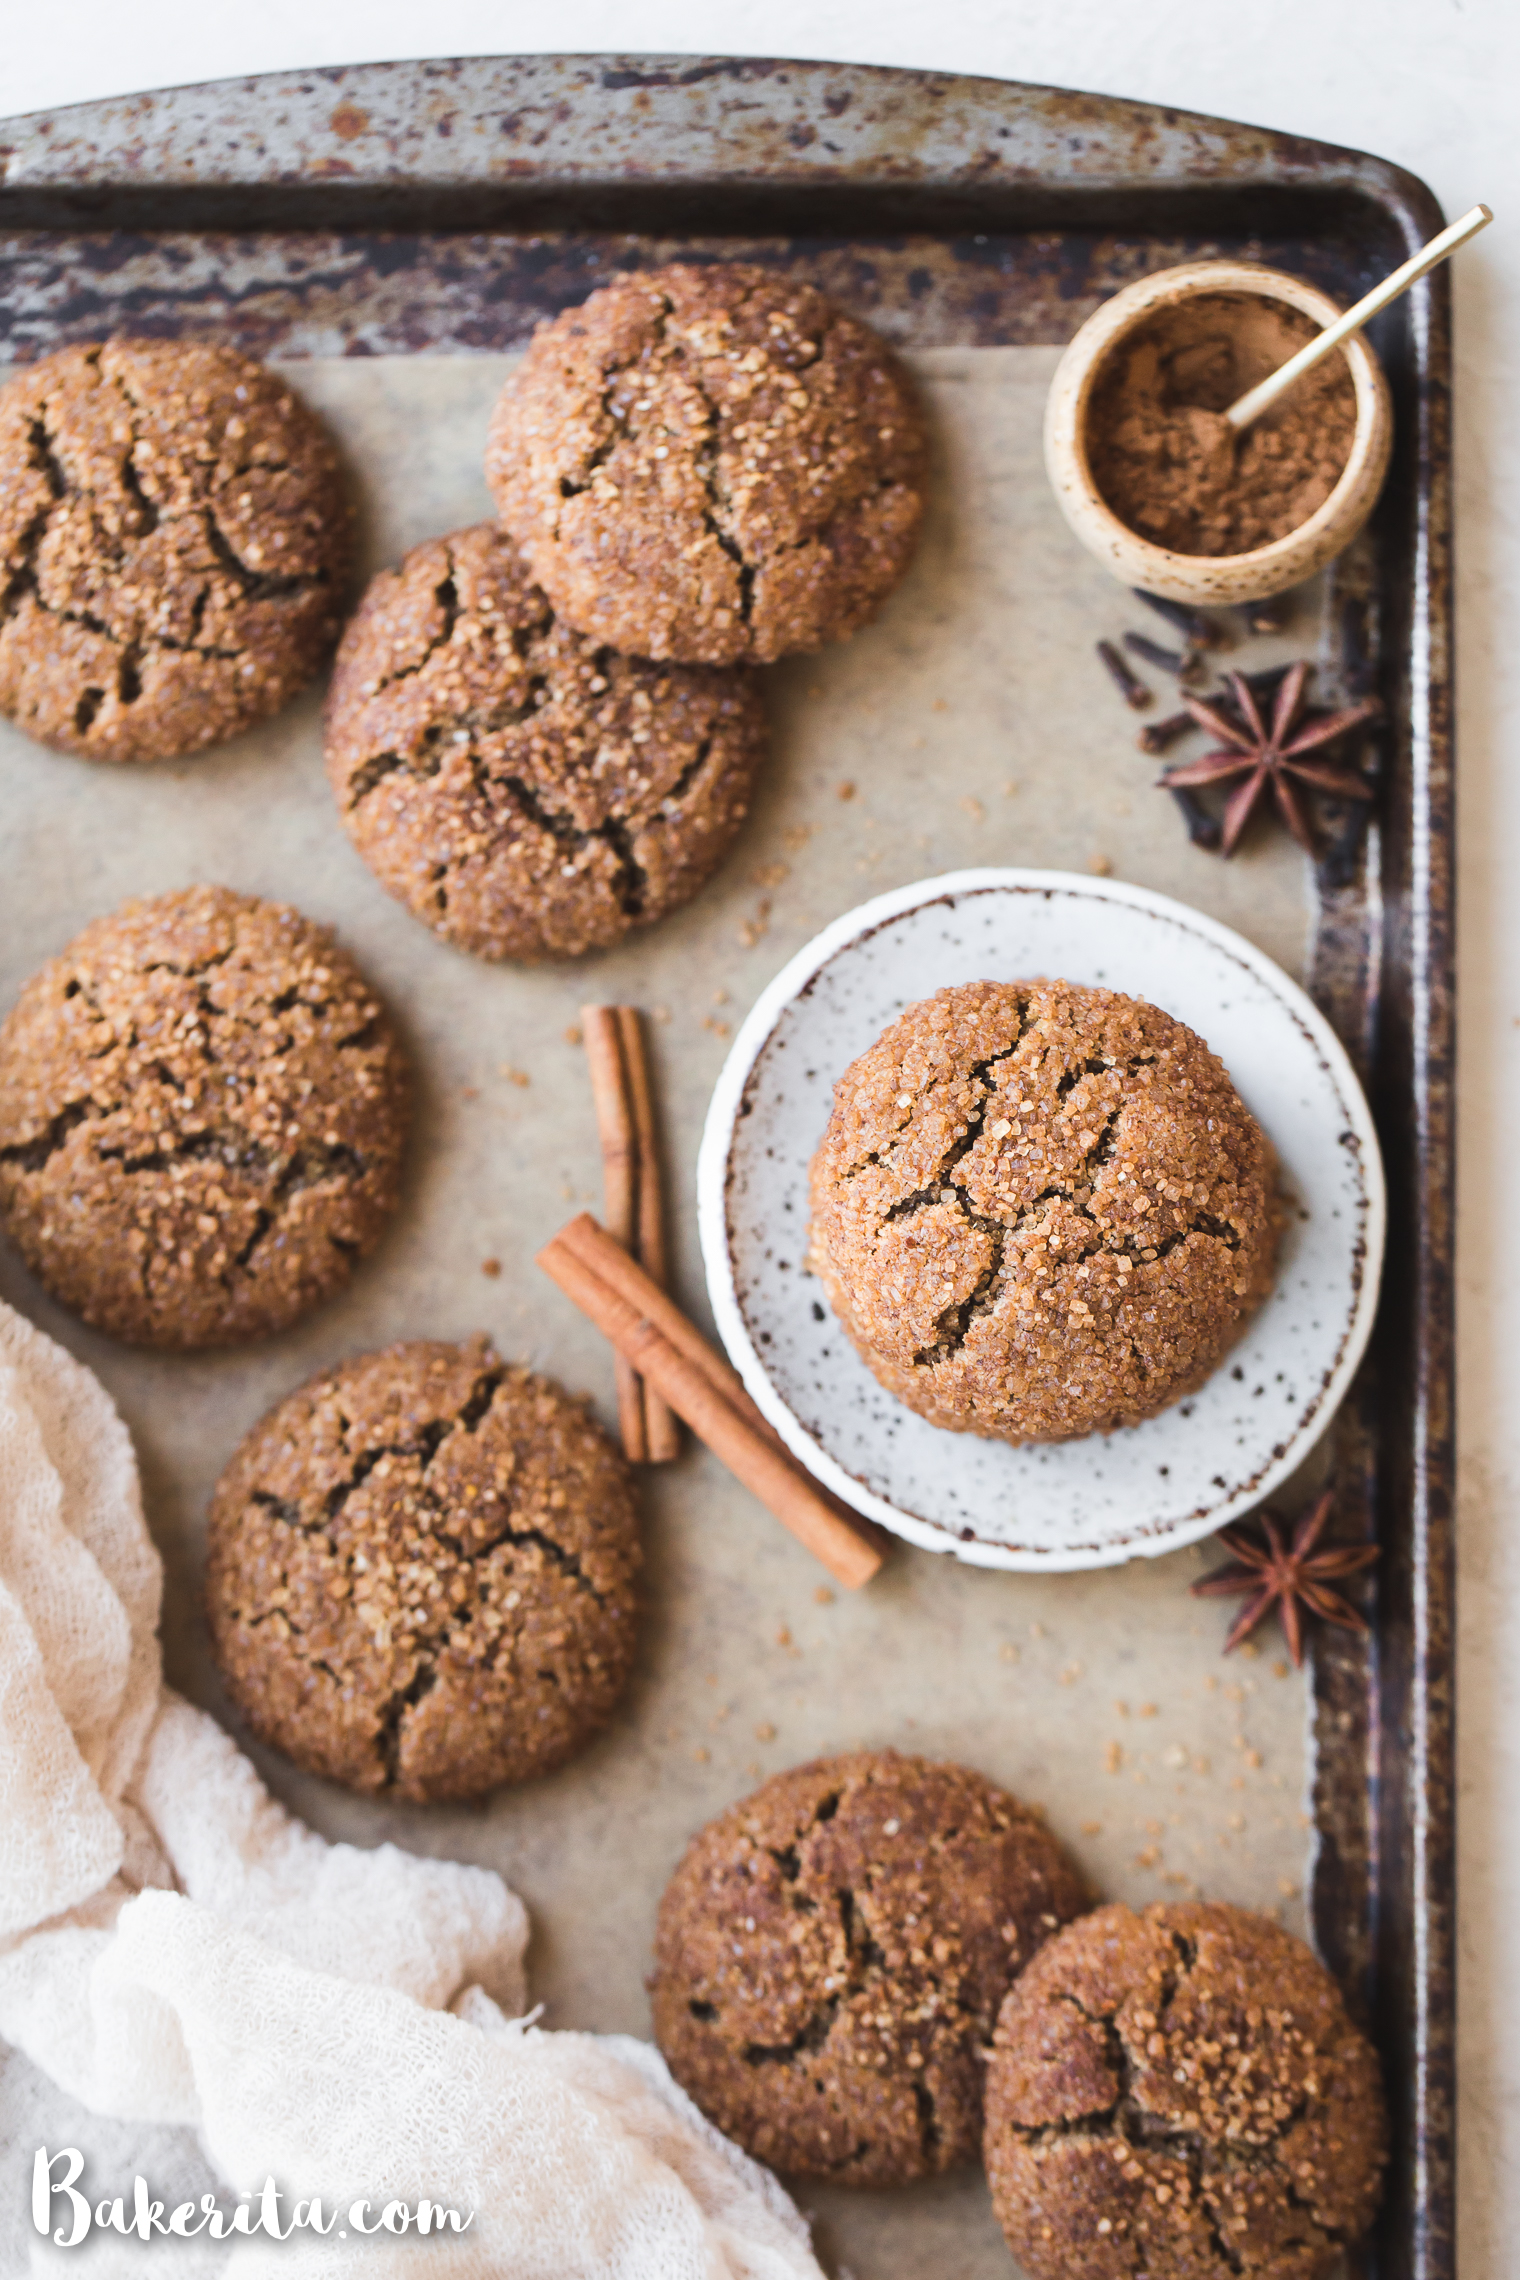 Meet your new favorite chewy cookie - these Gluten-Free Vegan Chai Sugar Cookies! These Paleo-friendly cookies have a crispy exterior with a tender, chewy center. They're the perfect pairing for nut milk, tea, or coffee.